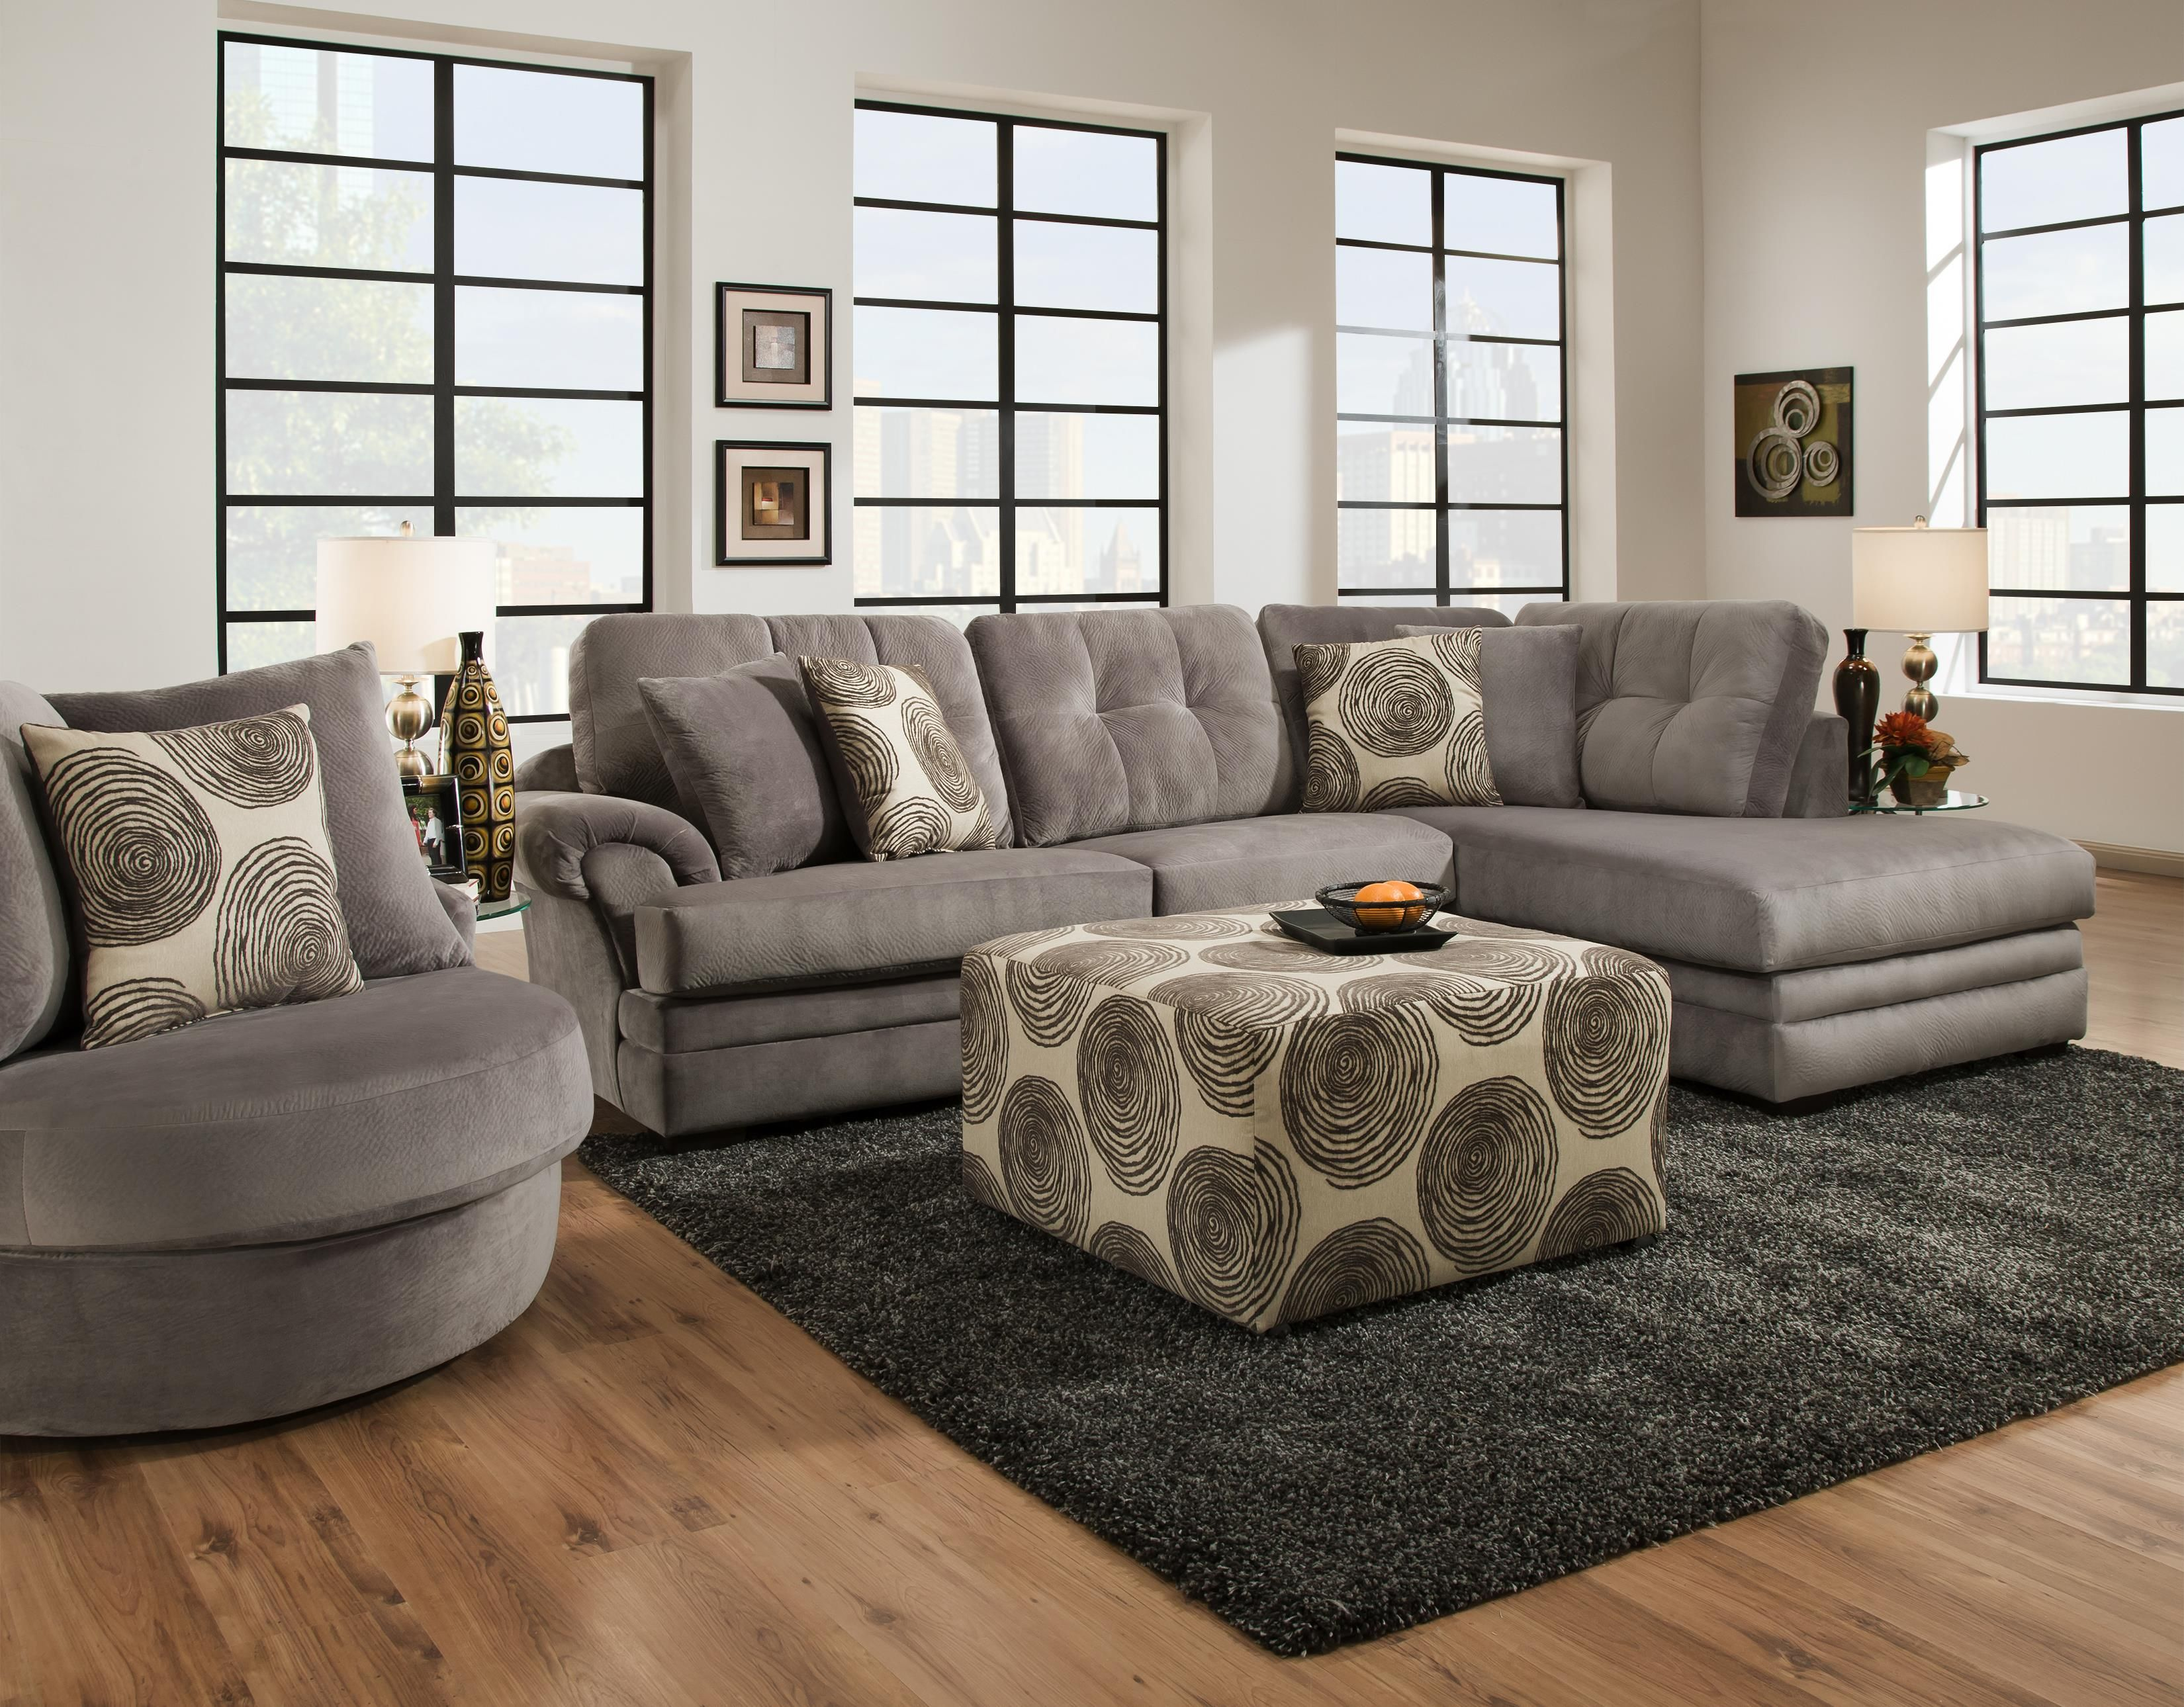 Pin By Whitney Finch On Furniture Comfortable Living Room